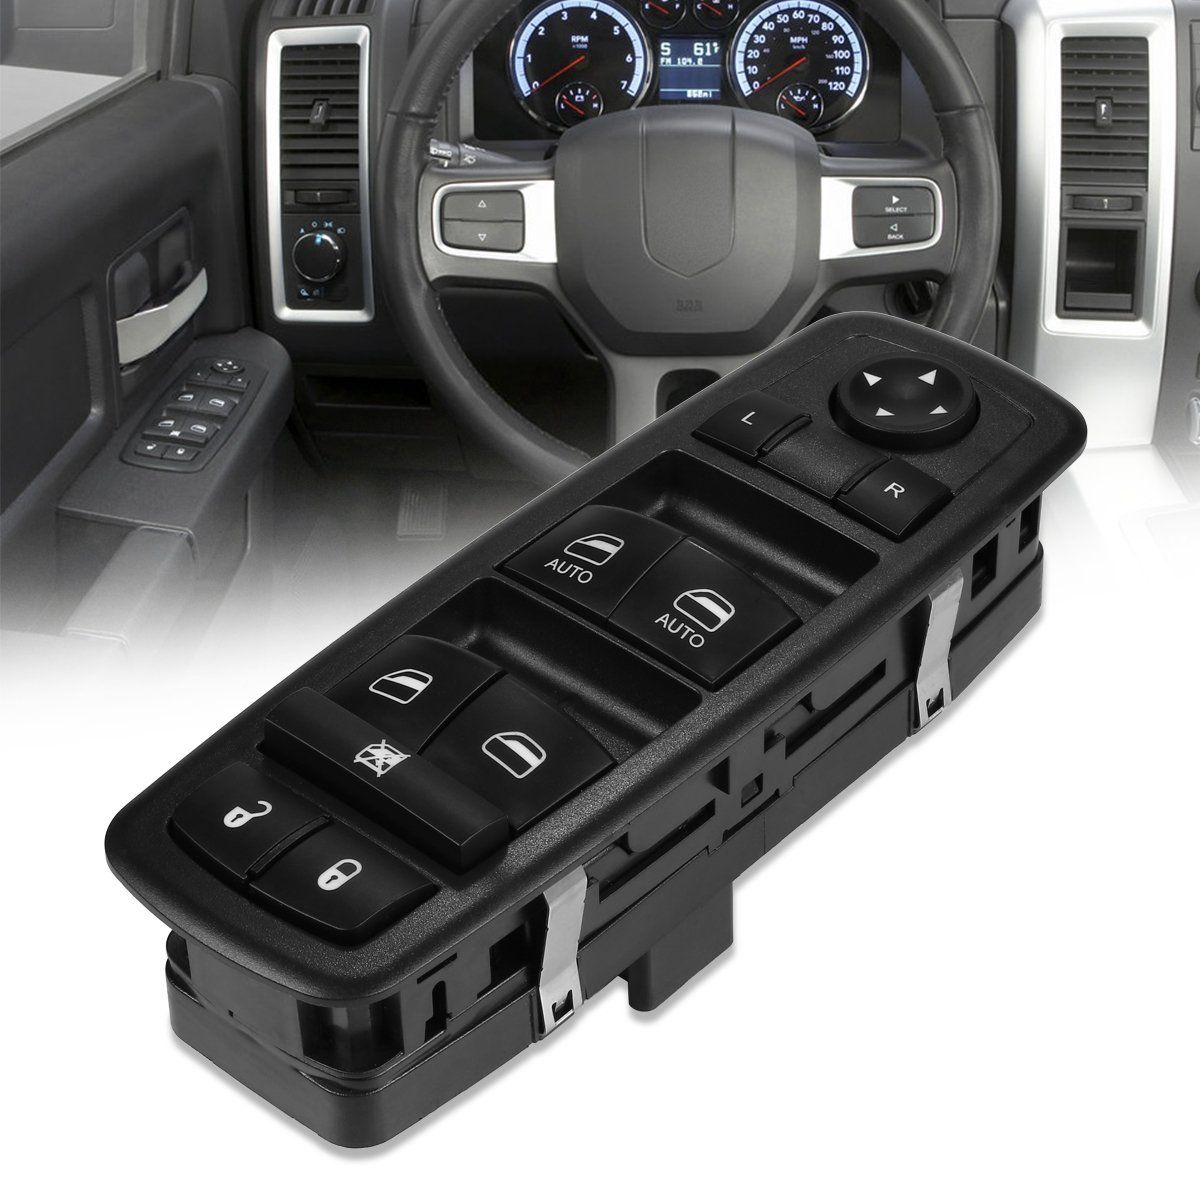 11 14 Dodge Charger 11 12 Chrysler 300 4 Door Driver Side Master Power Window Control Switch Chrysler 300 2012 Dodge Charger Dodge Charger